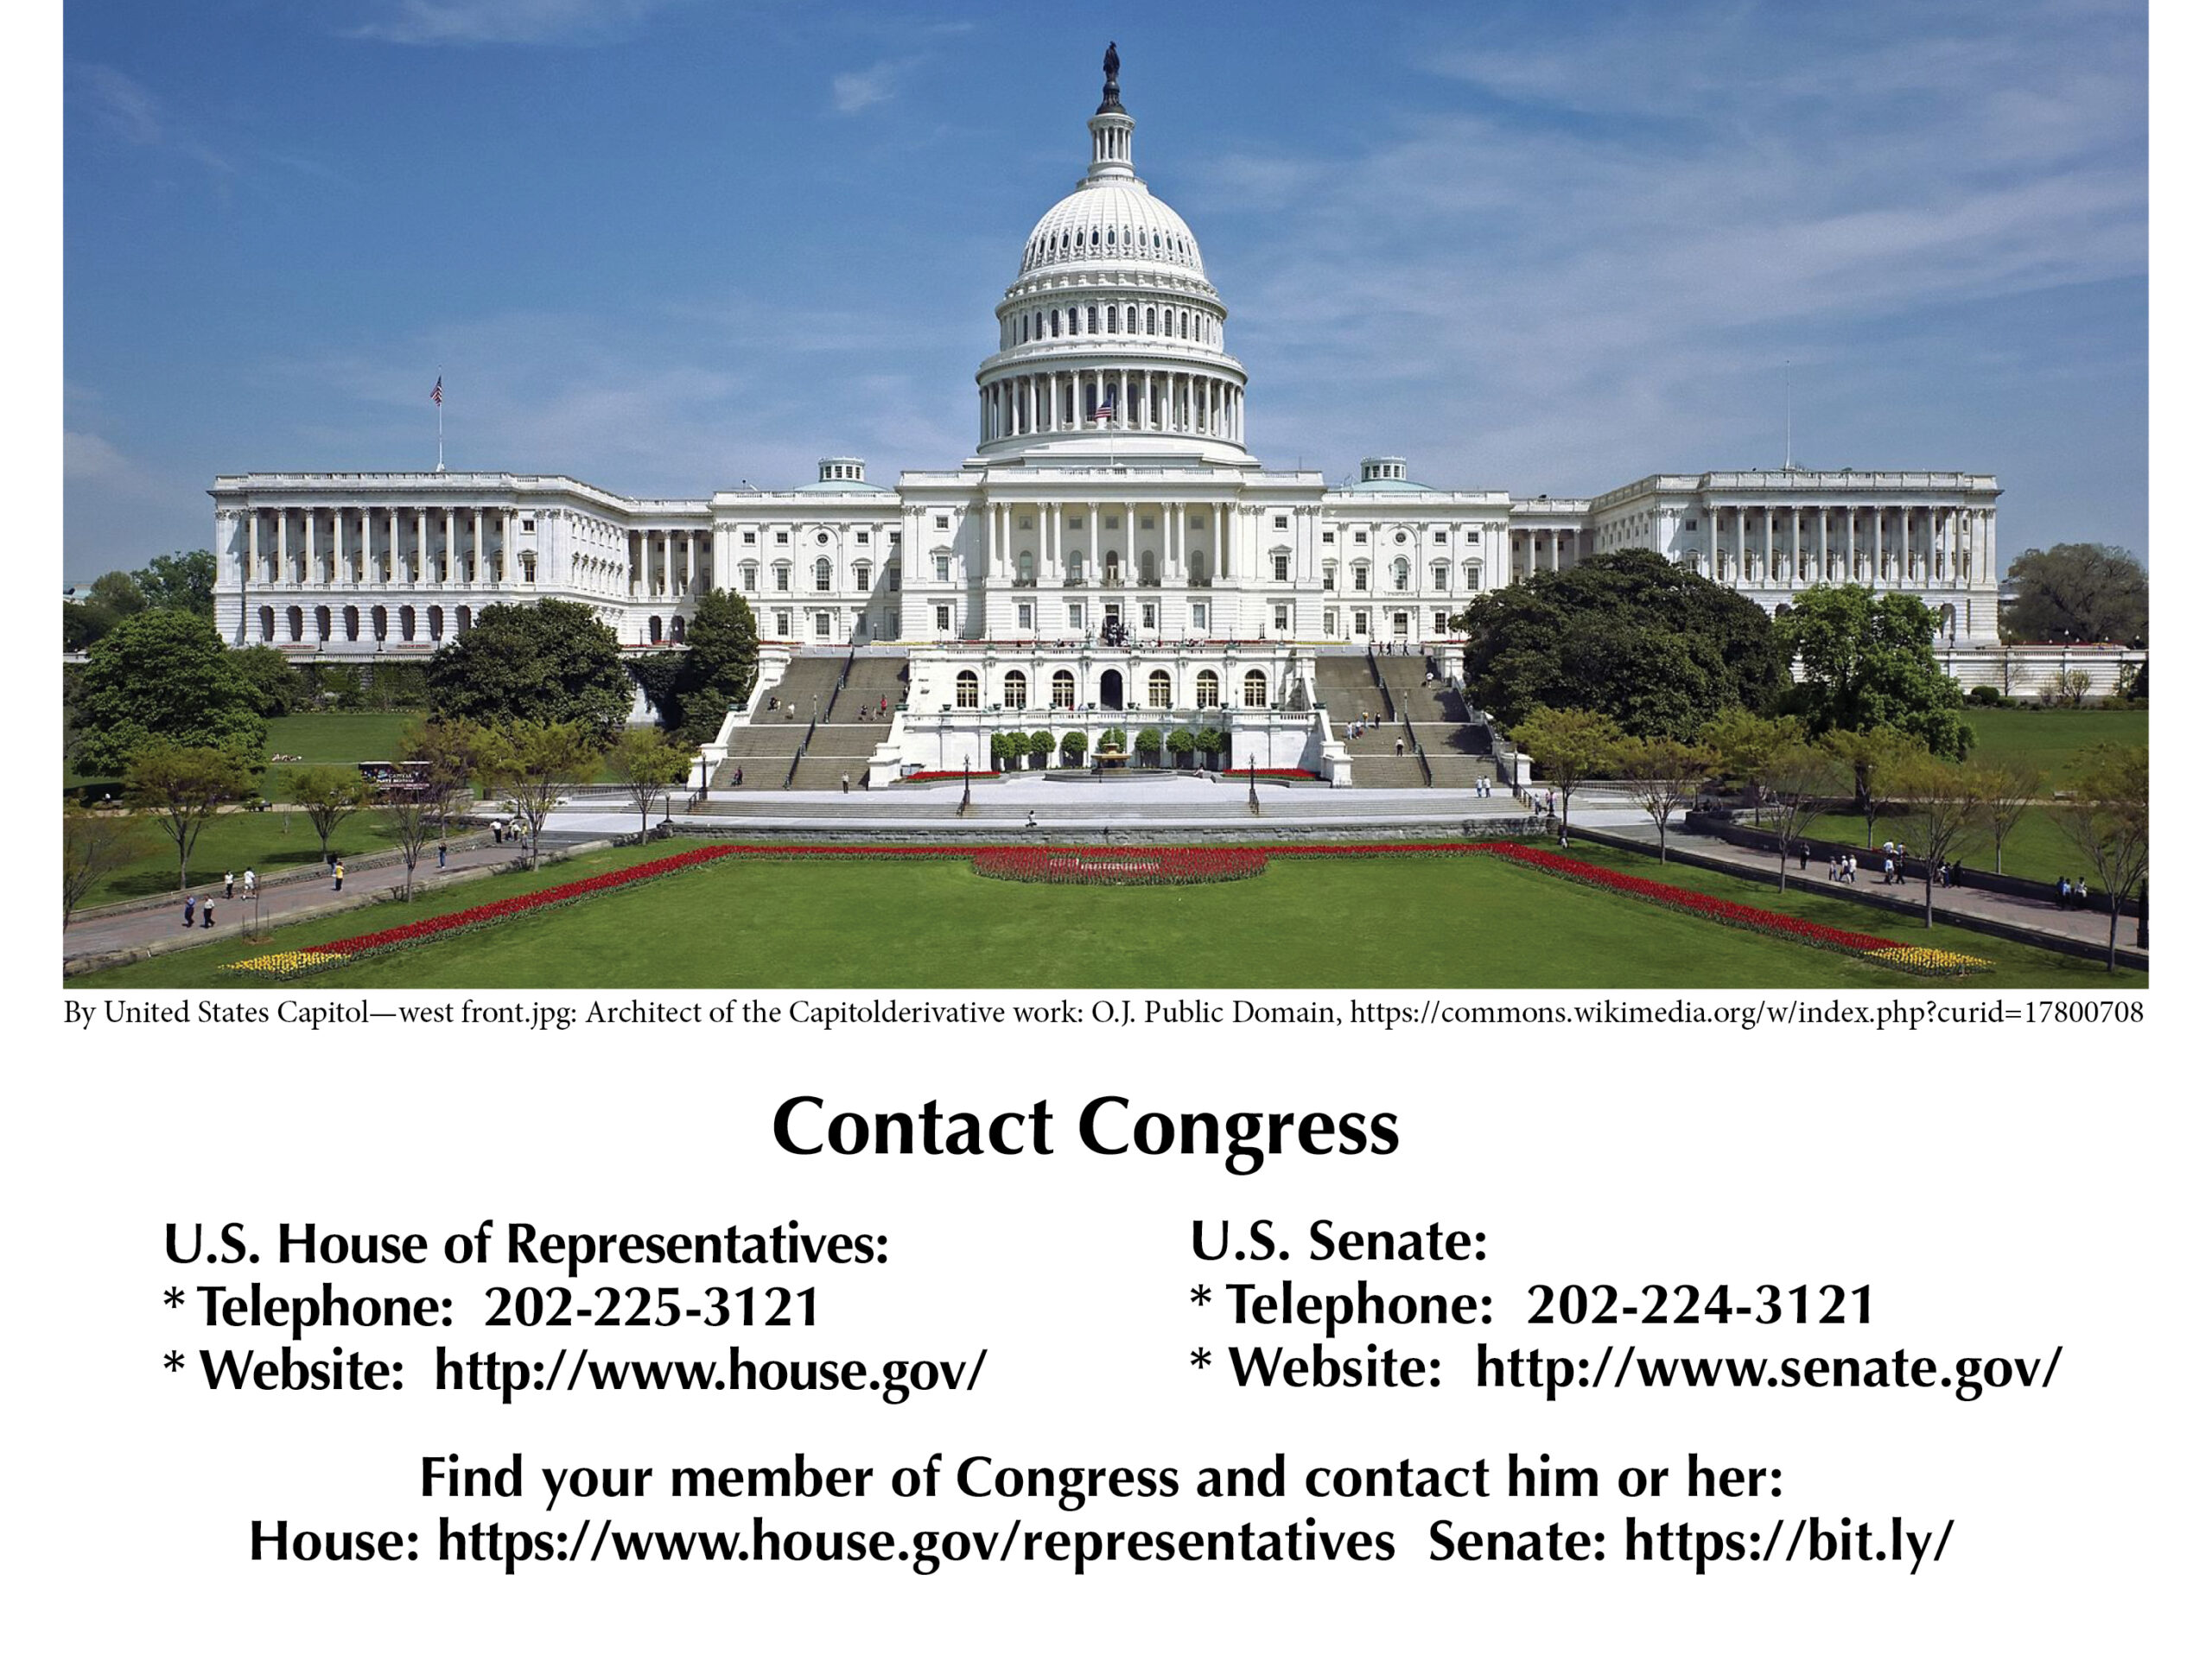 View of the U.S. Capitol from the west front paired with ways to contact U.S. Congress members